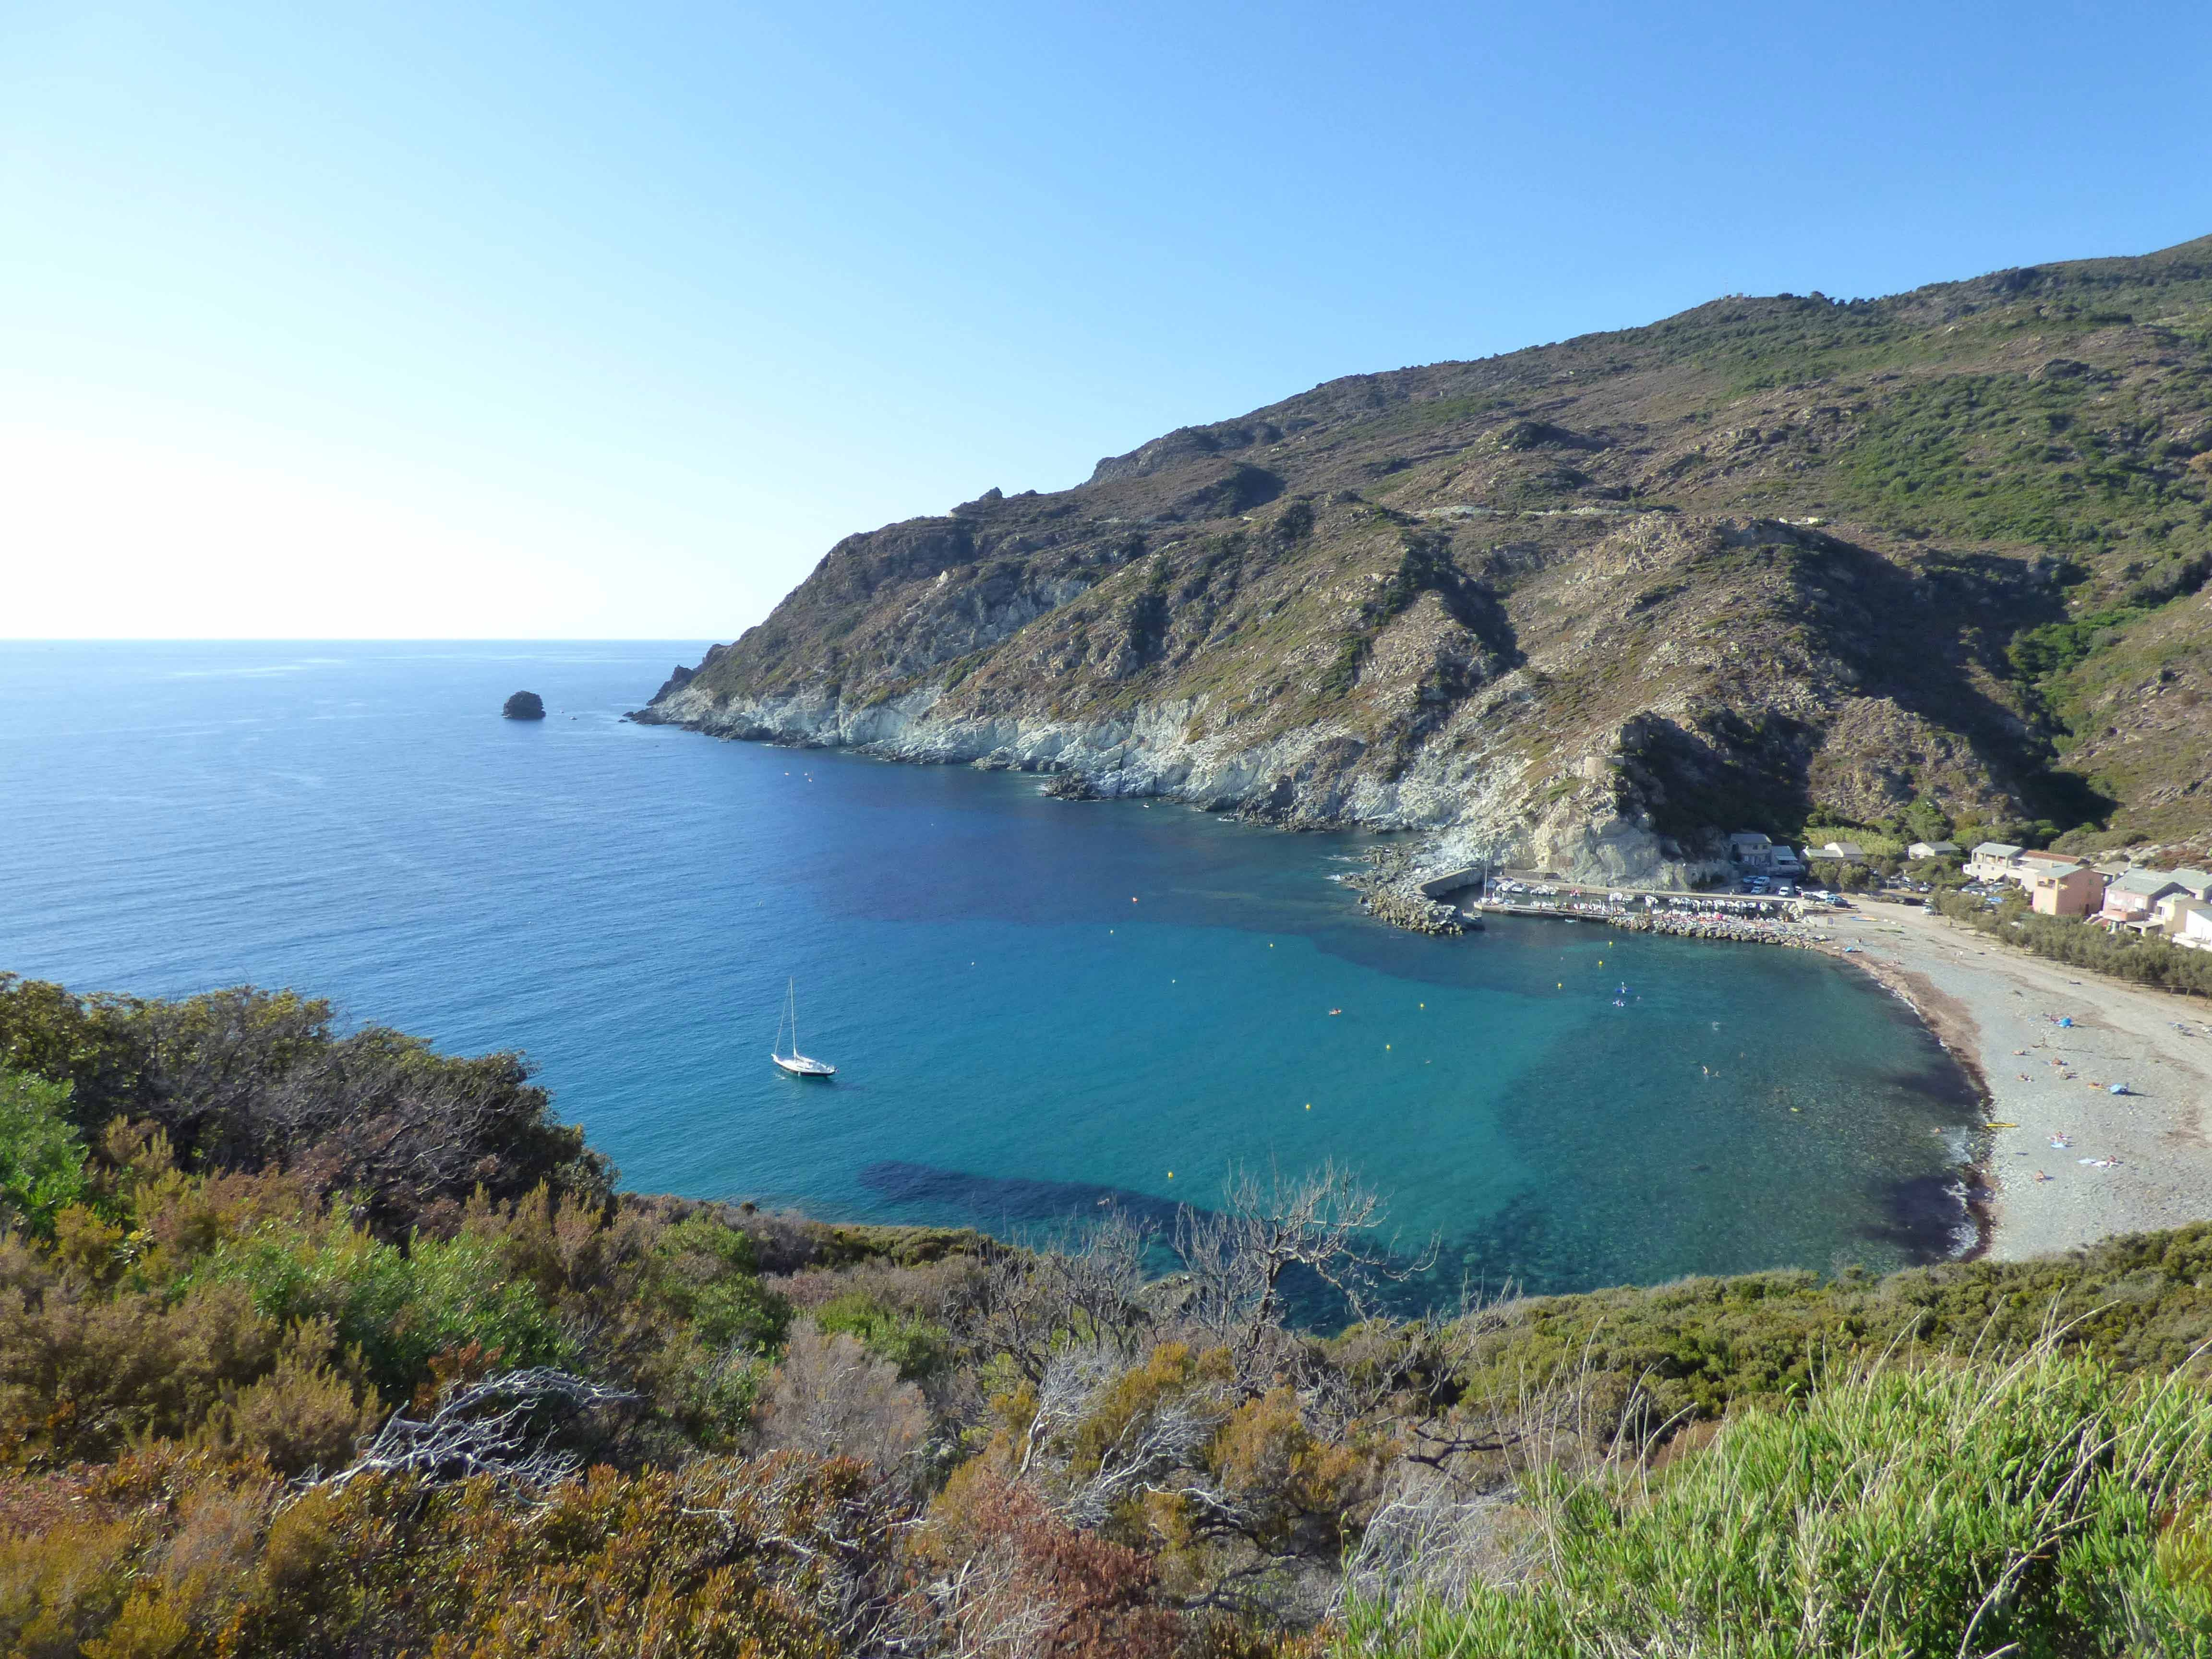 Locations Cap Corse - Giottani Cap Corse - Plage la plus proche de la location